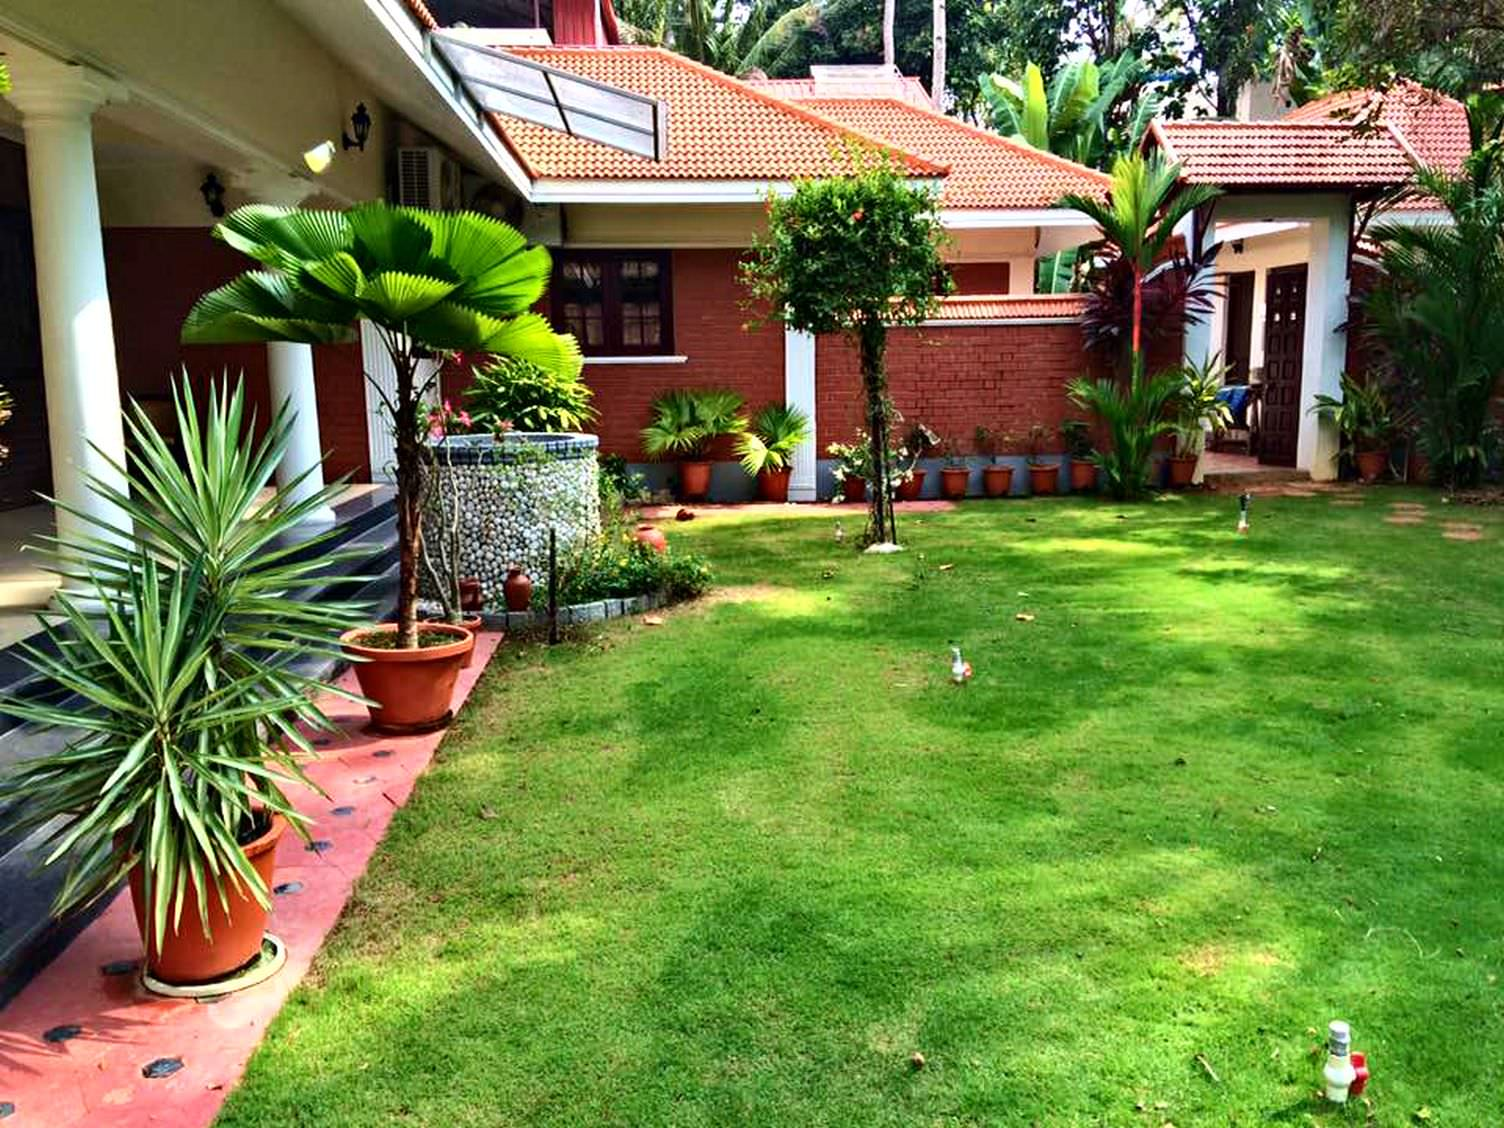 Kerala Style Landscape Design Photos - Kerala Home Design And Floor Plans